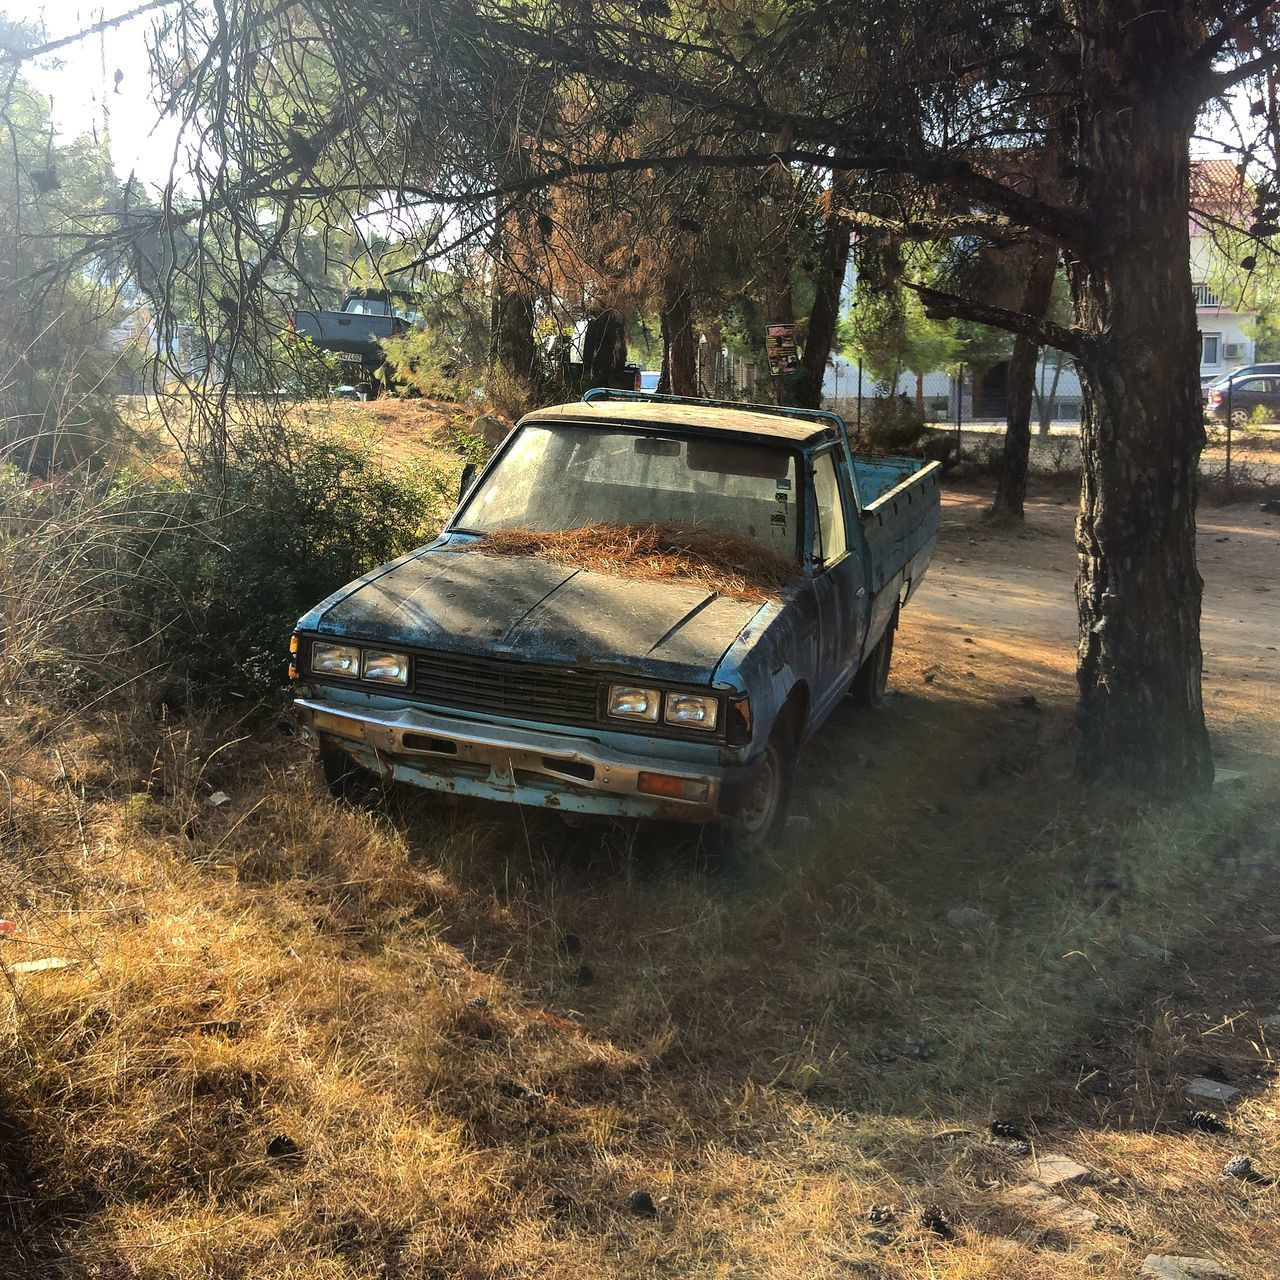 tree, transportation, car, day, abandoned, no people, growth, nature, outdoors